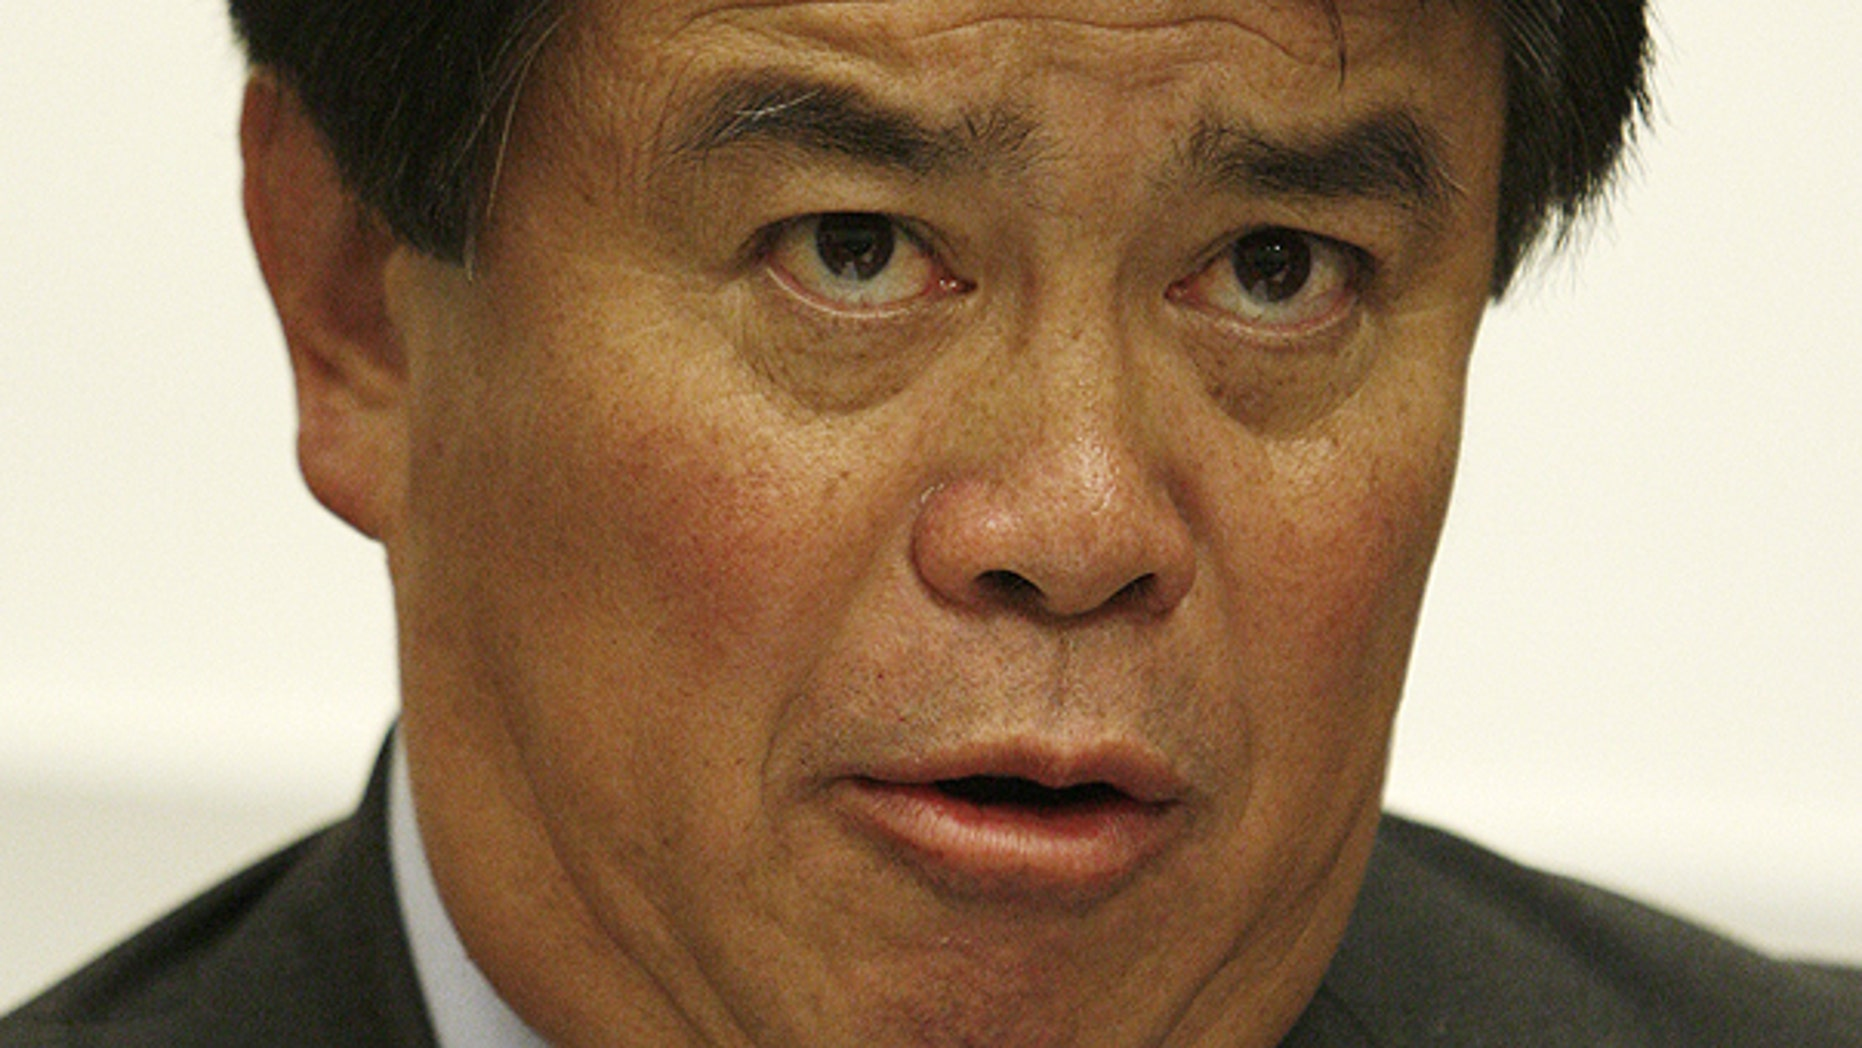 Rep. David Wu, D-Ore., is facing accusations of a 'unwanted sexual encounter.'